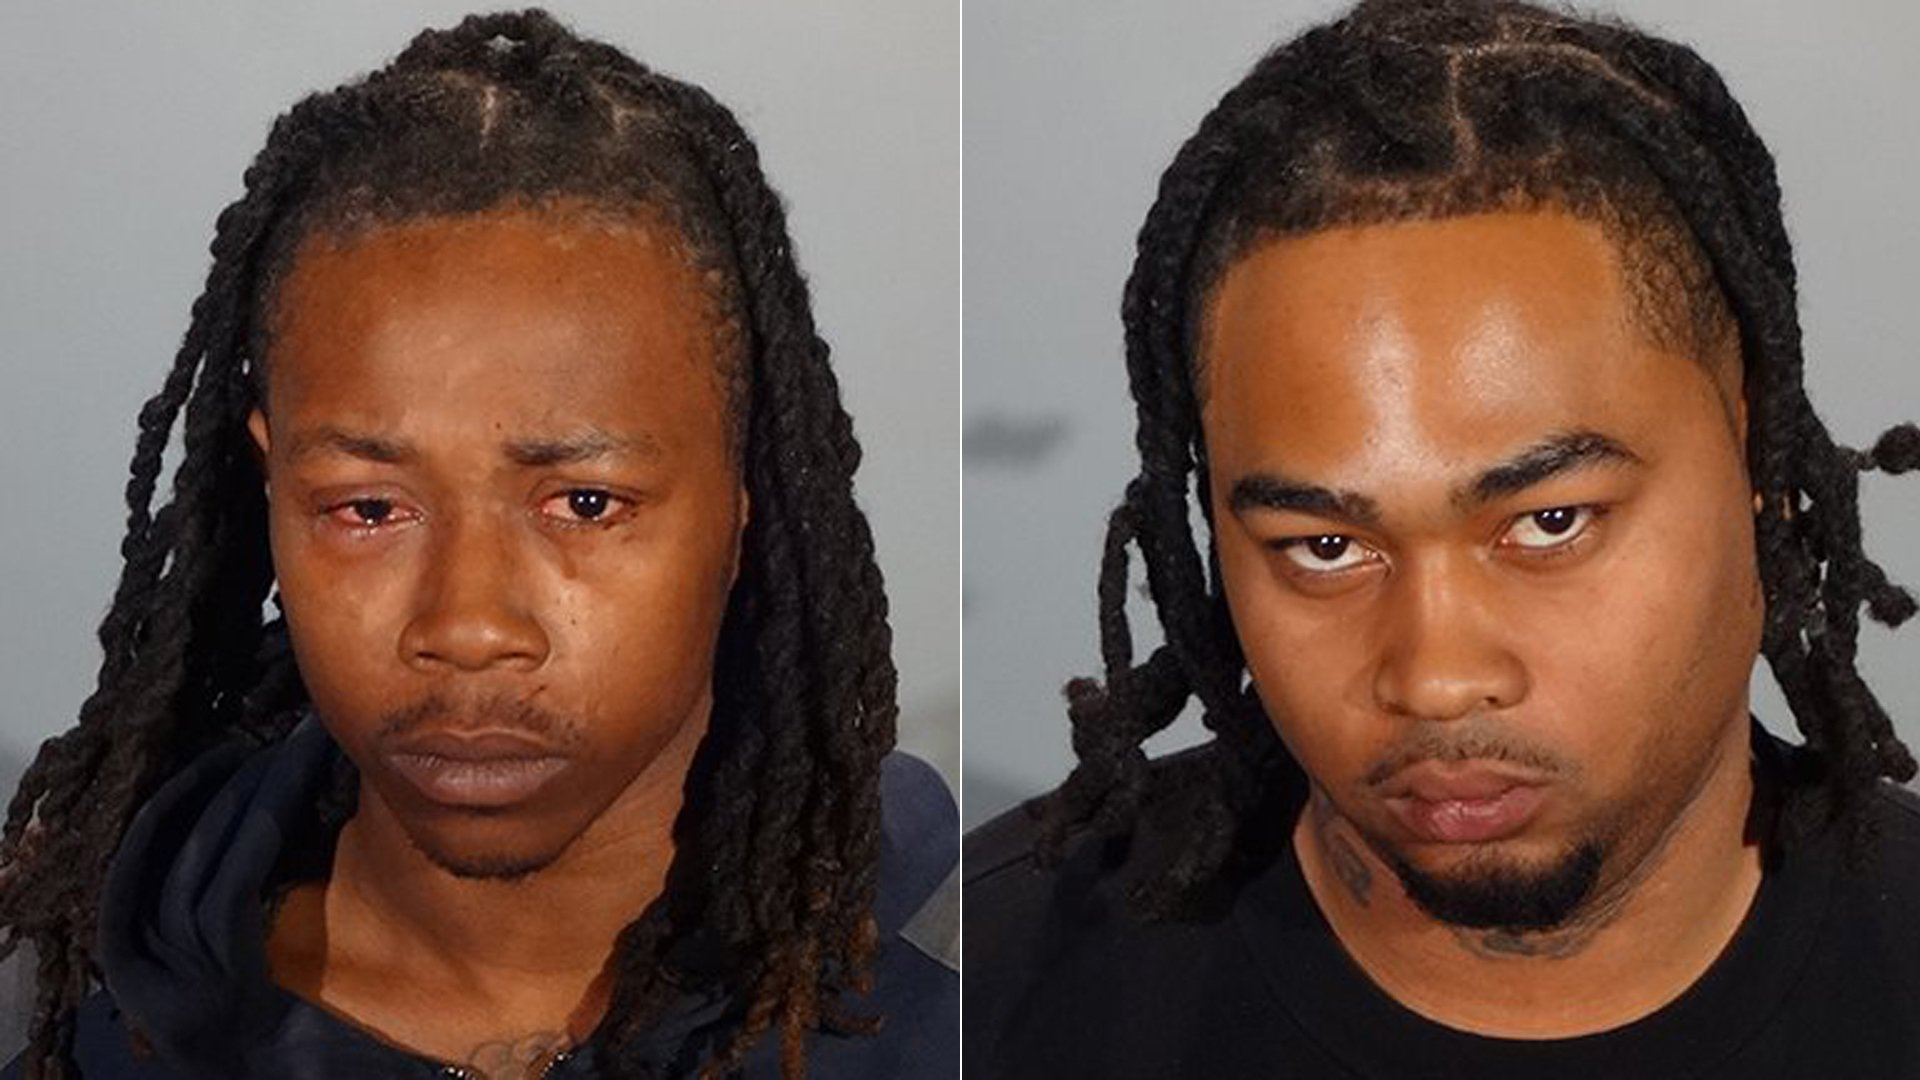 2 Suspected Car Thieves Arrested in Glendale With Help of Find My iPhone App: Police